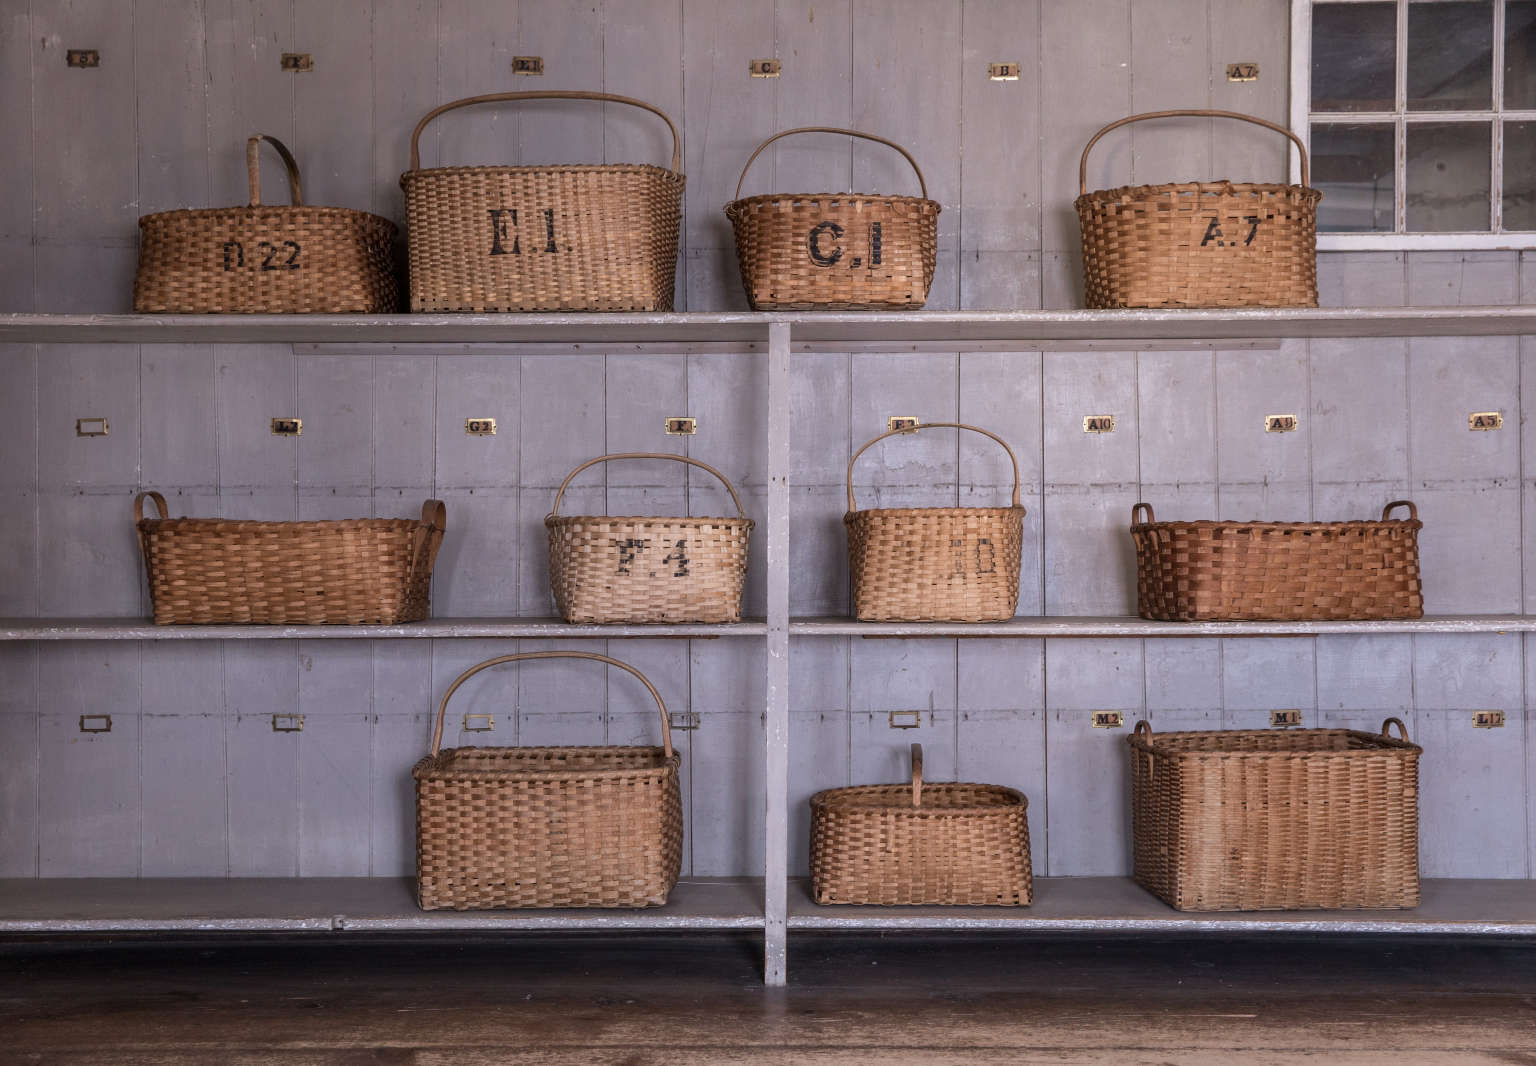 Laundry Baskets at Canterbury Shaker Village, Photo by Erin Little